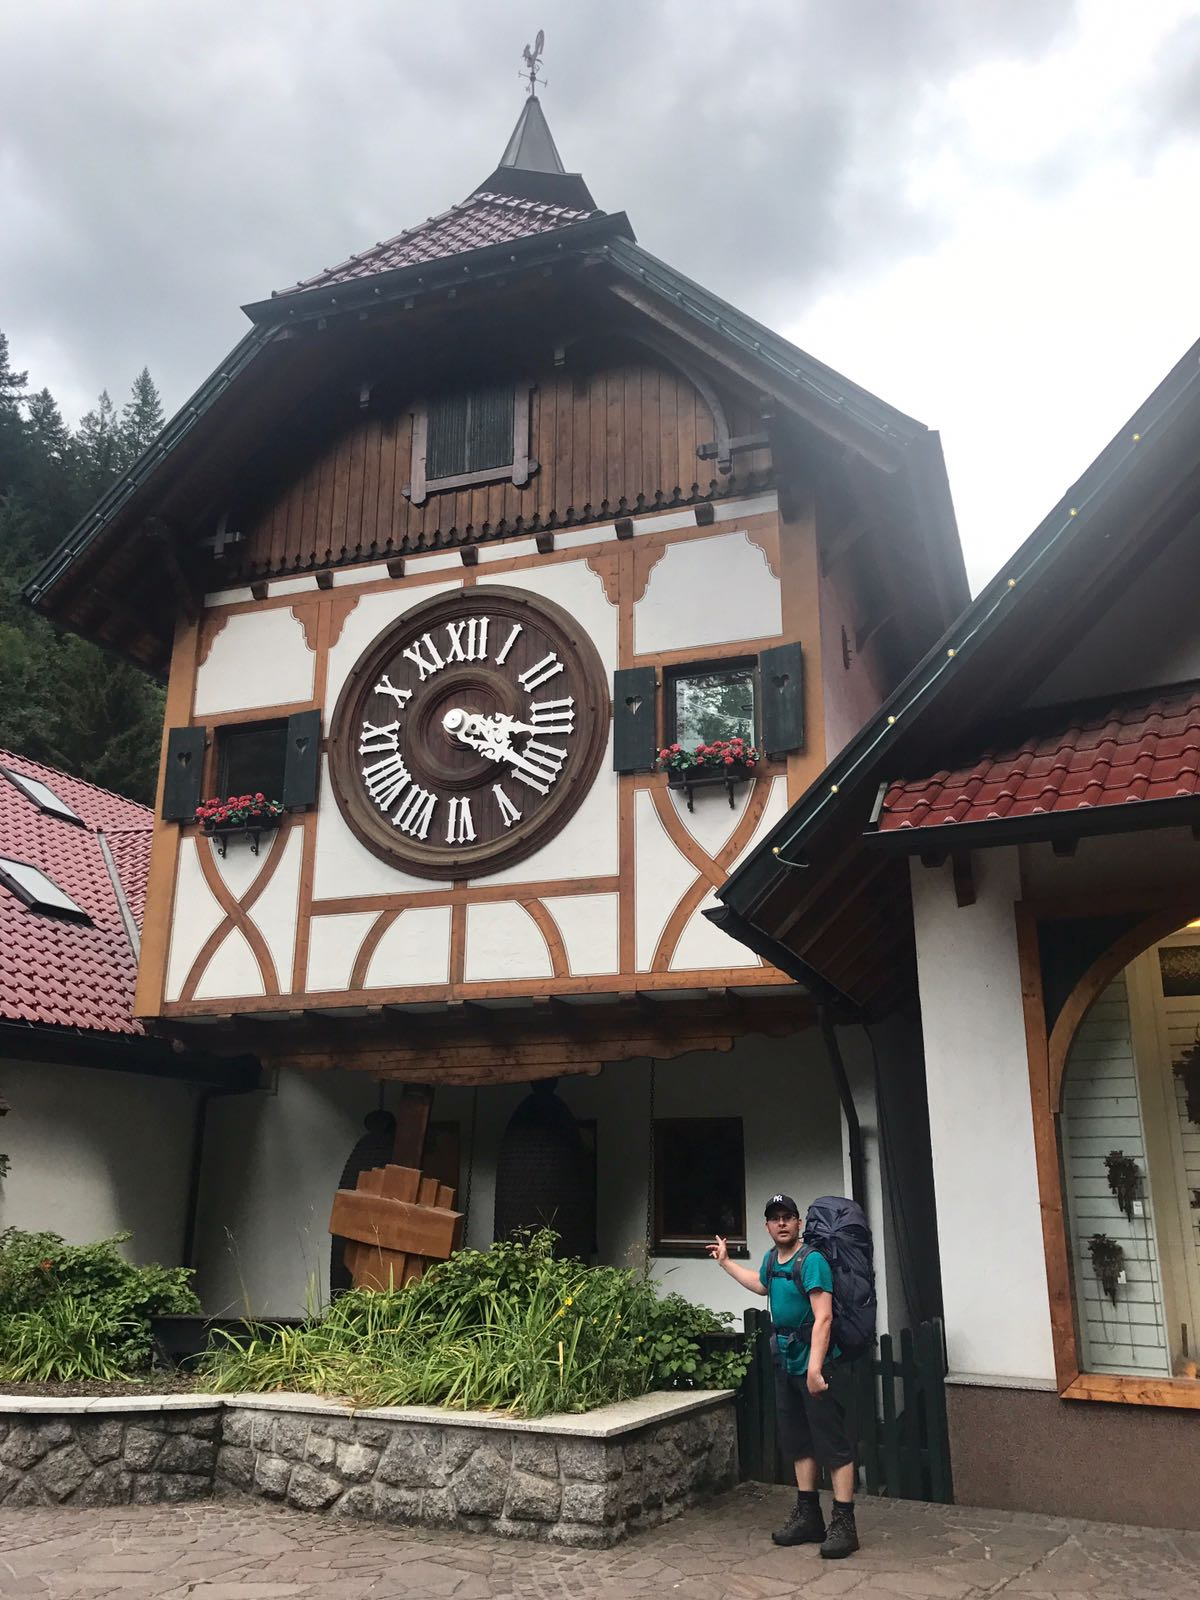 Cuckoo clock the size of a house